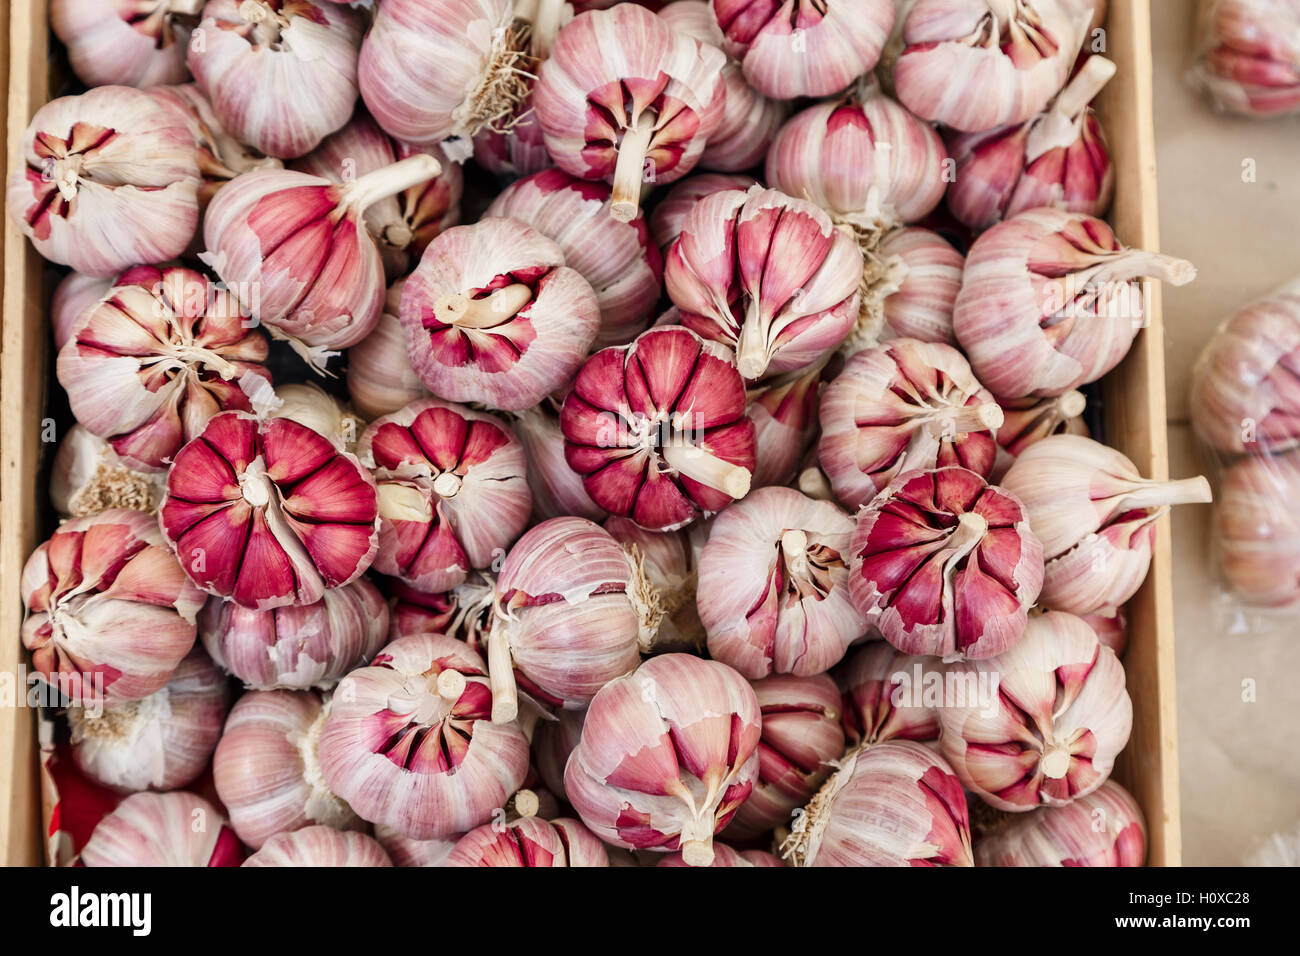 Red Garlic Bulbs For Sale, Palermo, Sicily - Stock Image